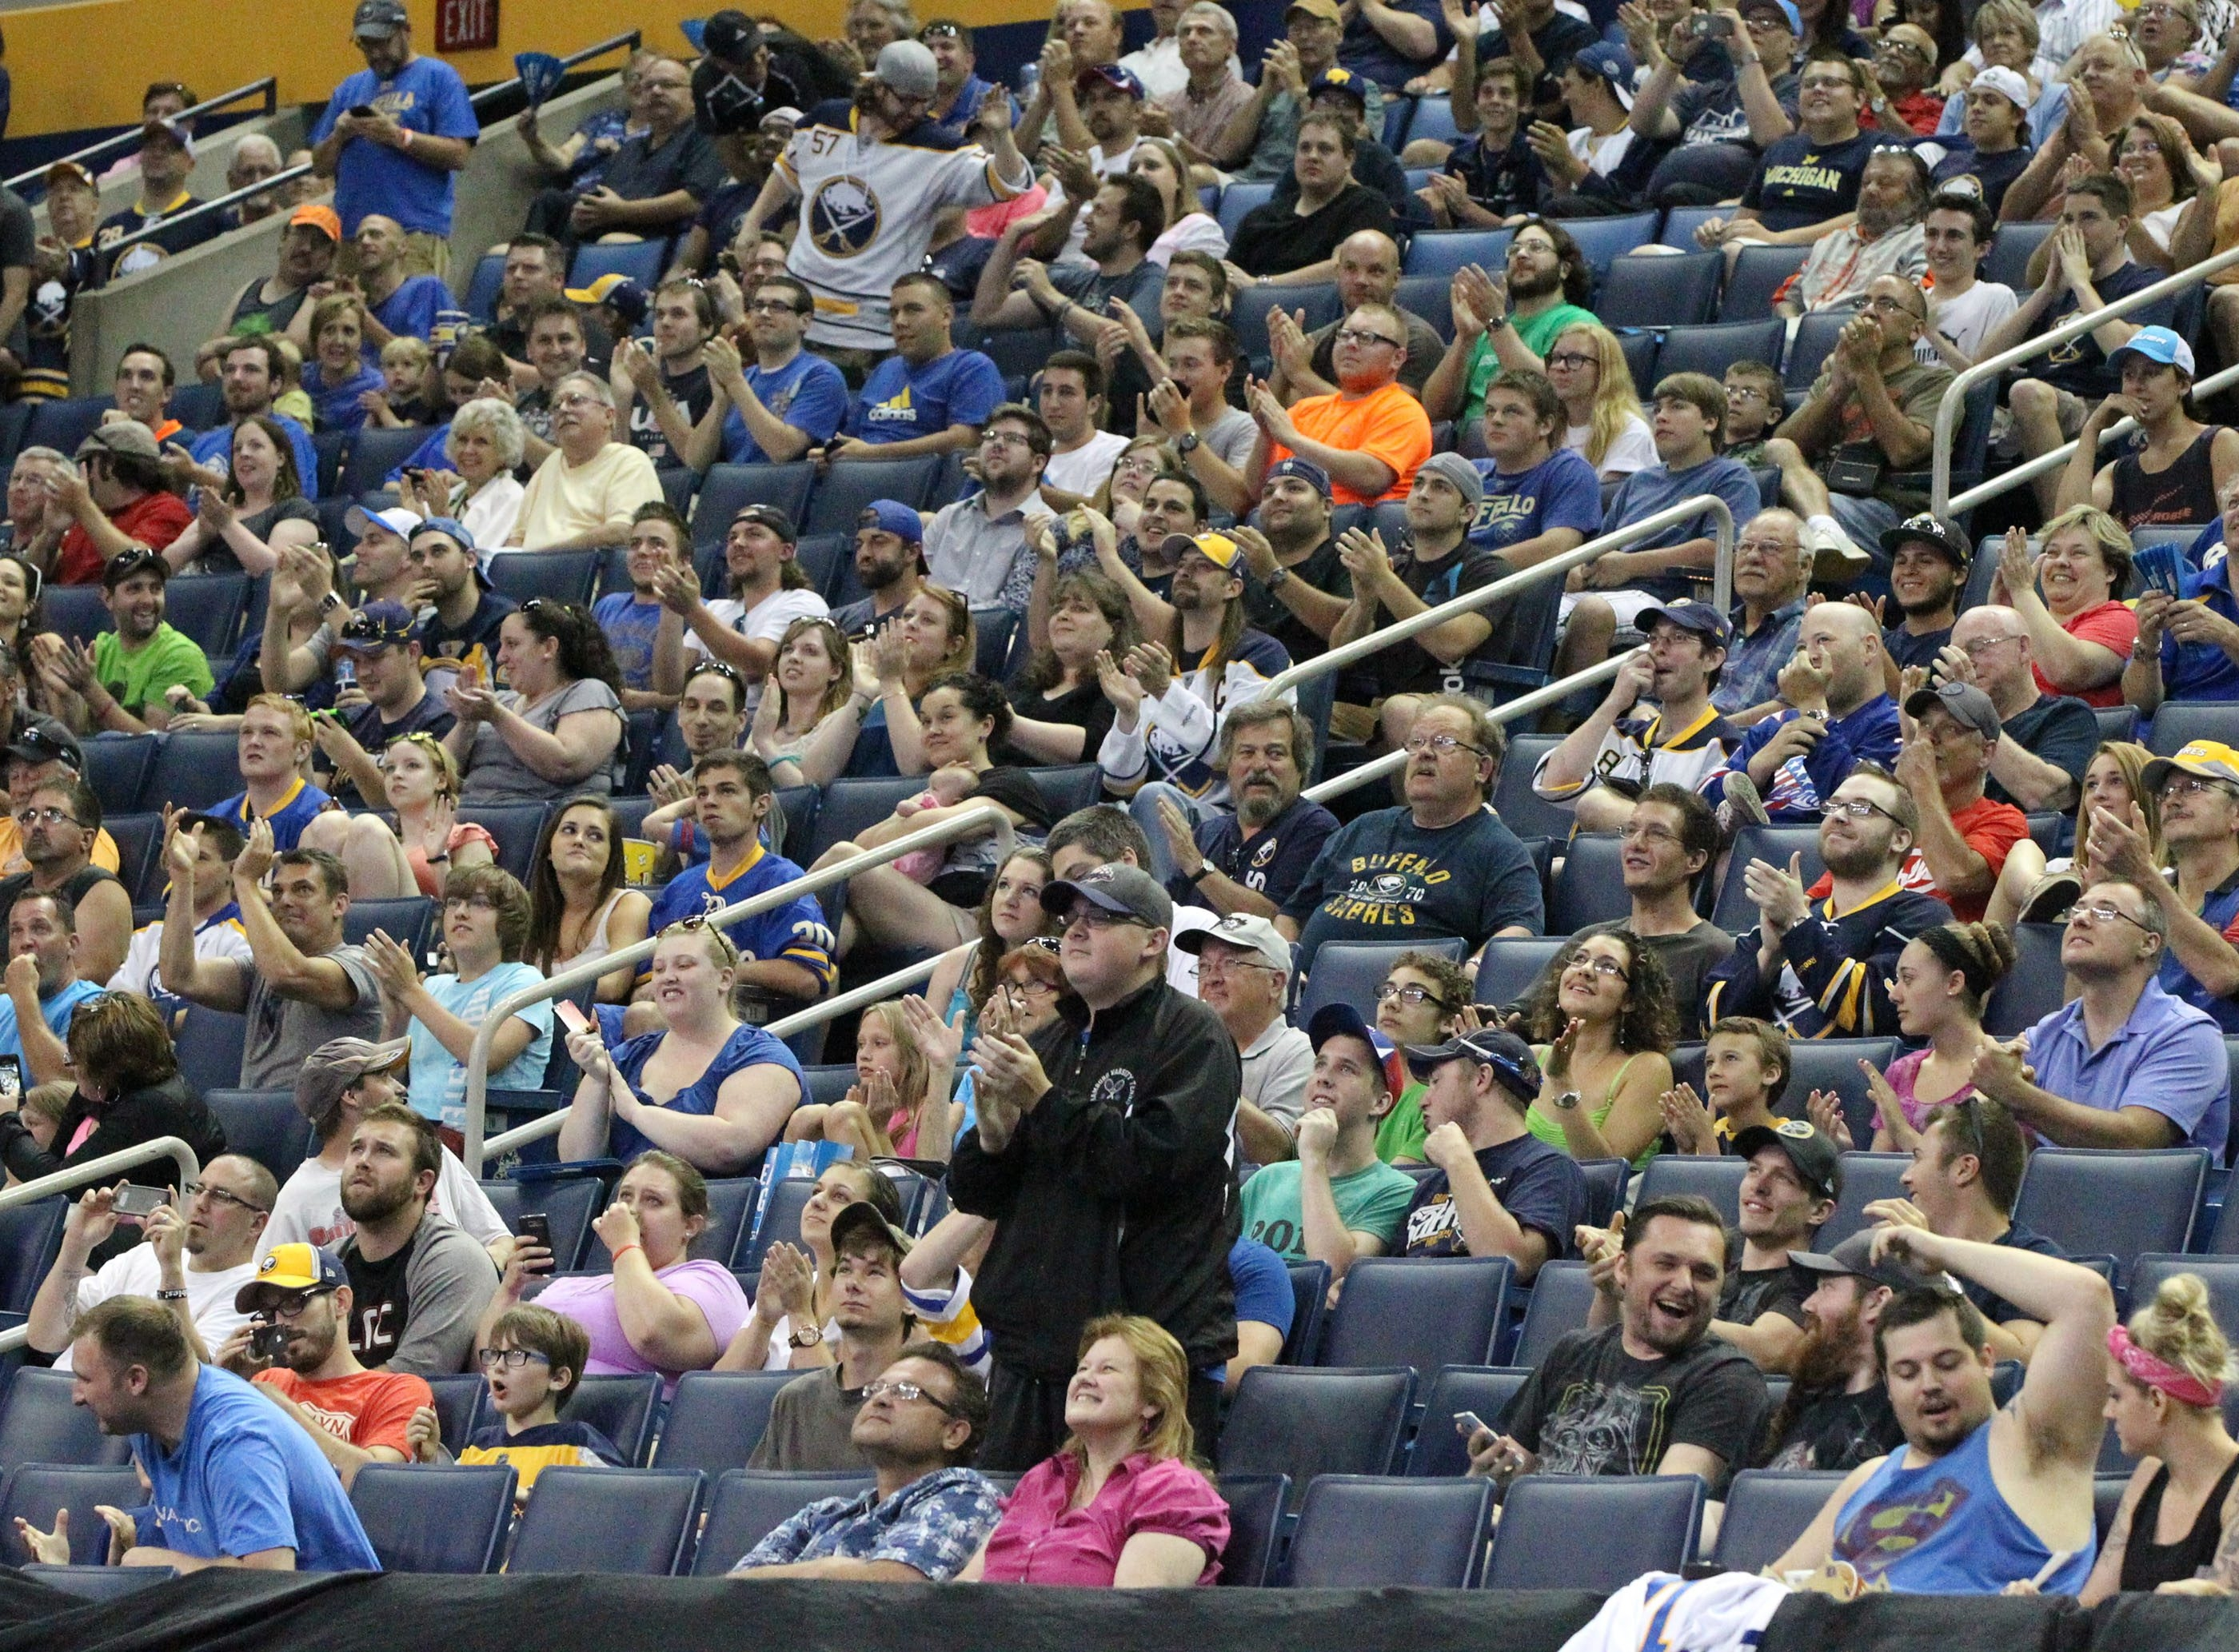 Sabres fans clap and cheer at the announcement of the Sabres first round pick at the NHL Draft at the First Niagara Center in Buffalo,NY on Friday, June 27, 2014.  (James P. McCoy/ Buffalo News)